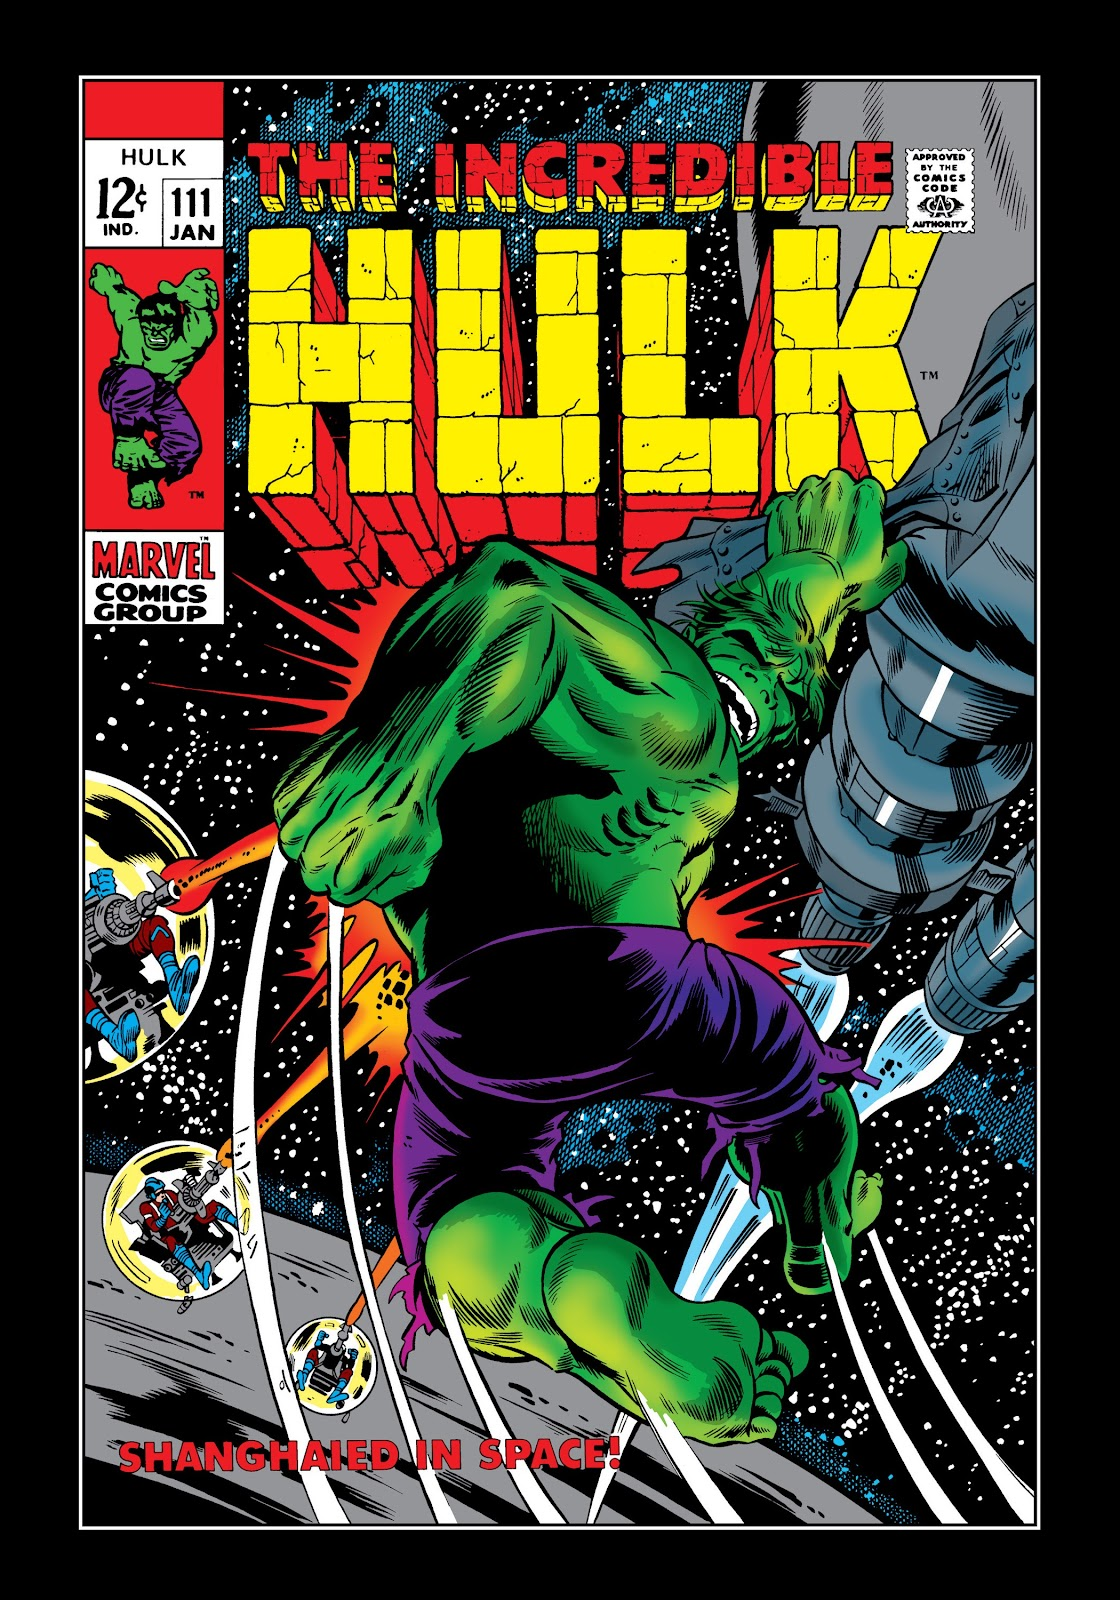 Read online Marvel Masterworks: The Incredible Hulk comic -  Issue # TPB 5 (Part 1) - 6